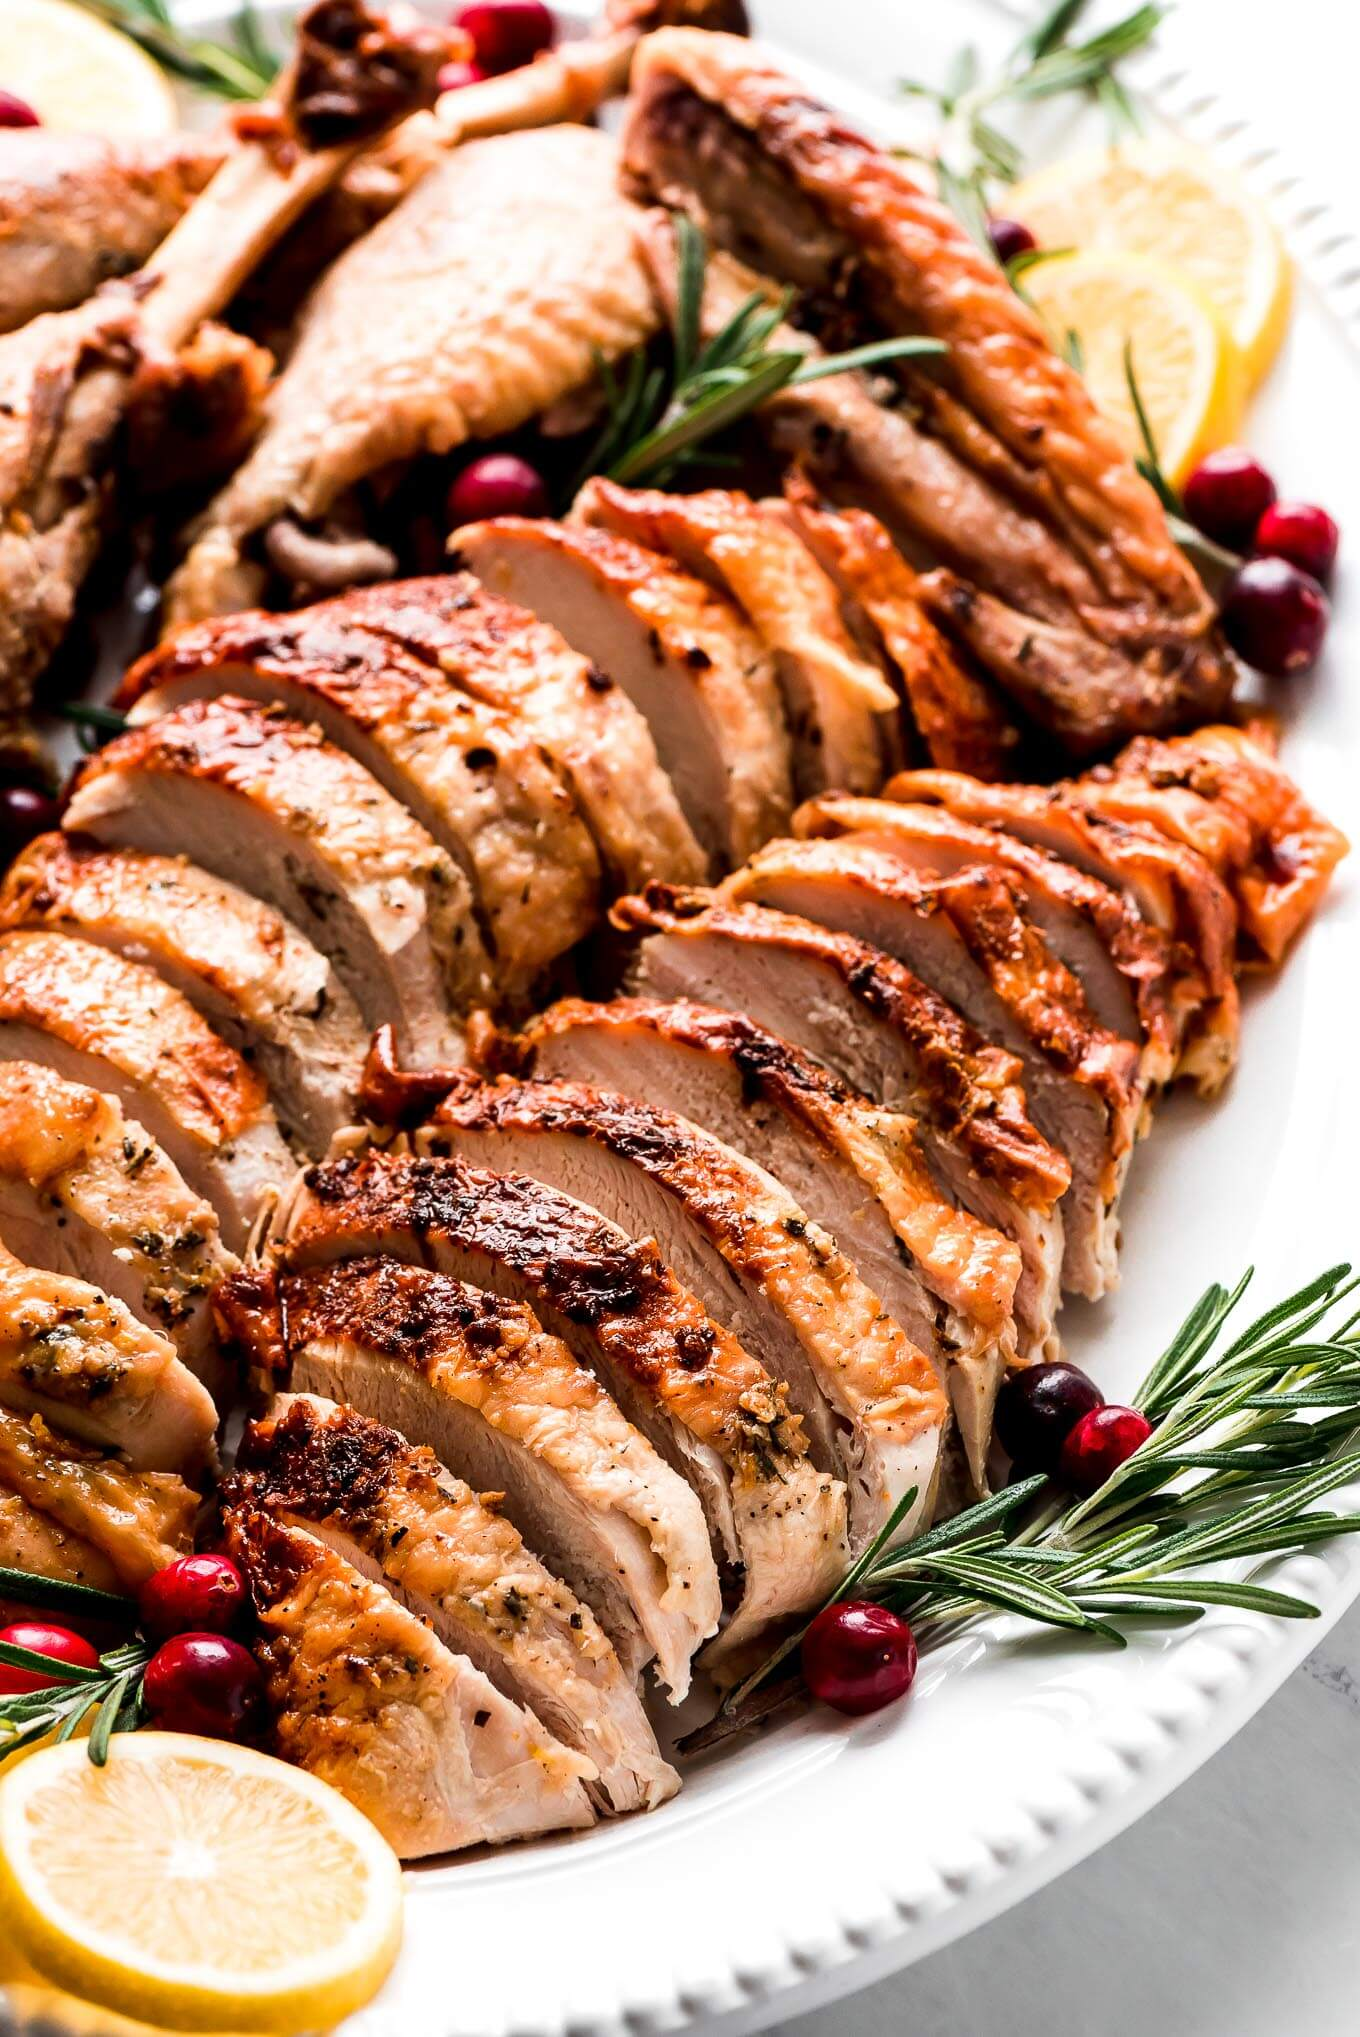 Roast Turkey in a Bag sliced up on a platter garnished with cranberries, rosemary, and lemon slices